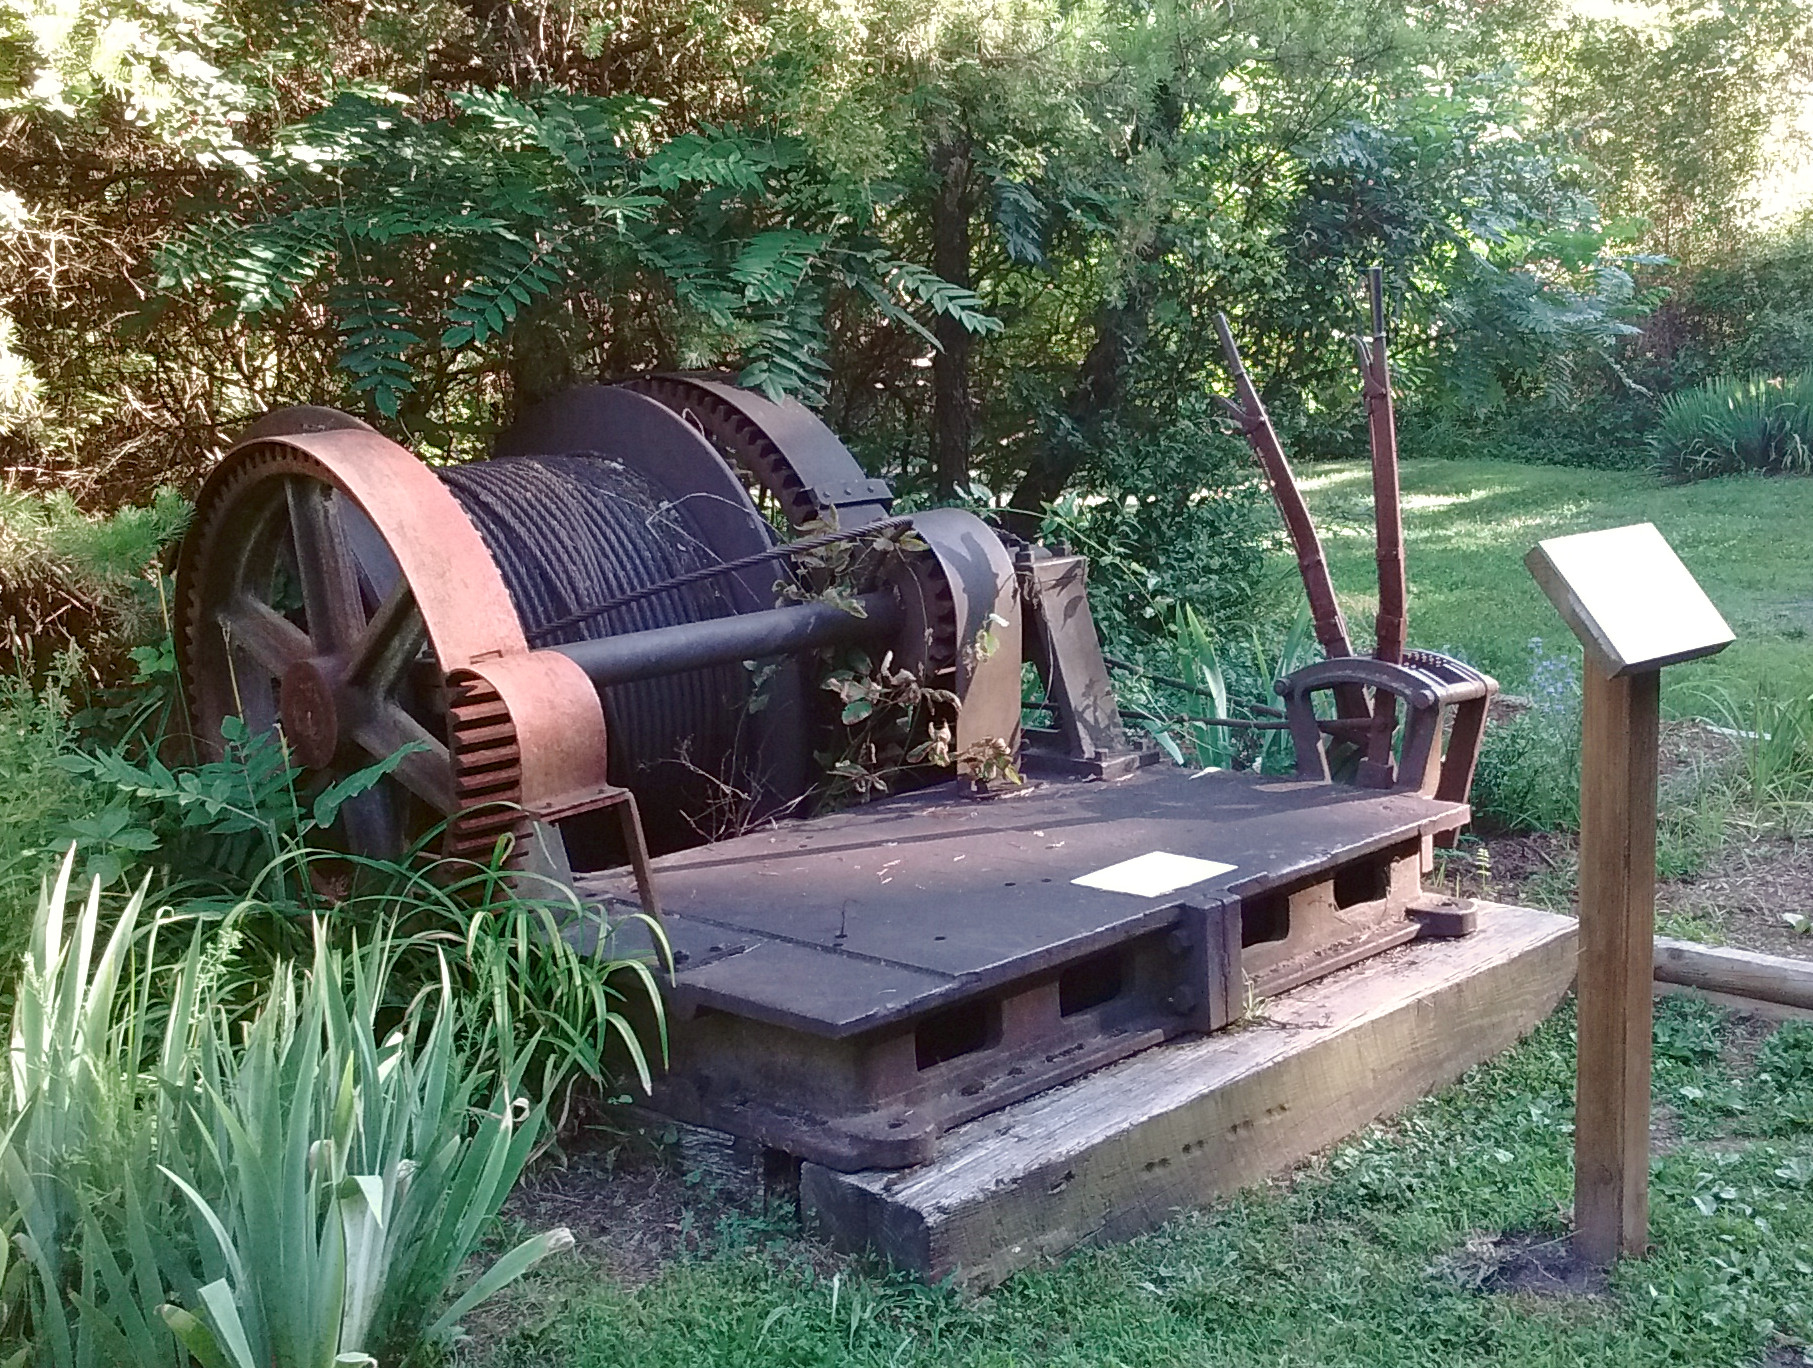 Abandoned coal mining equipment at the Coal Mining Heritage Park; image by Vejlenser - Own work, CC BY-SA 4.0, https://commons.wikimedia.org/w/index.php?curid=52421662